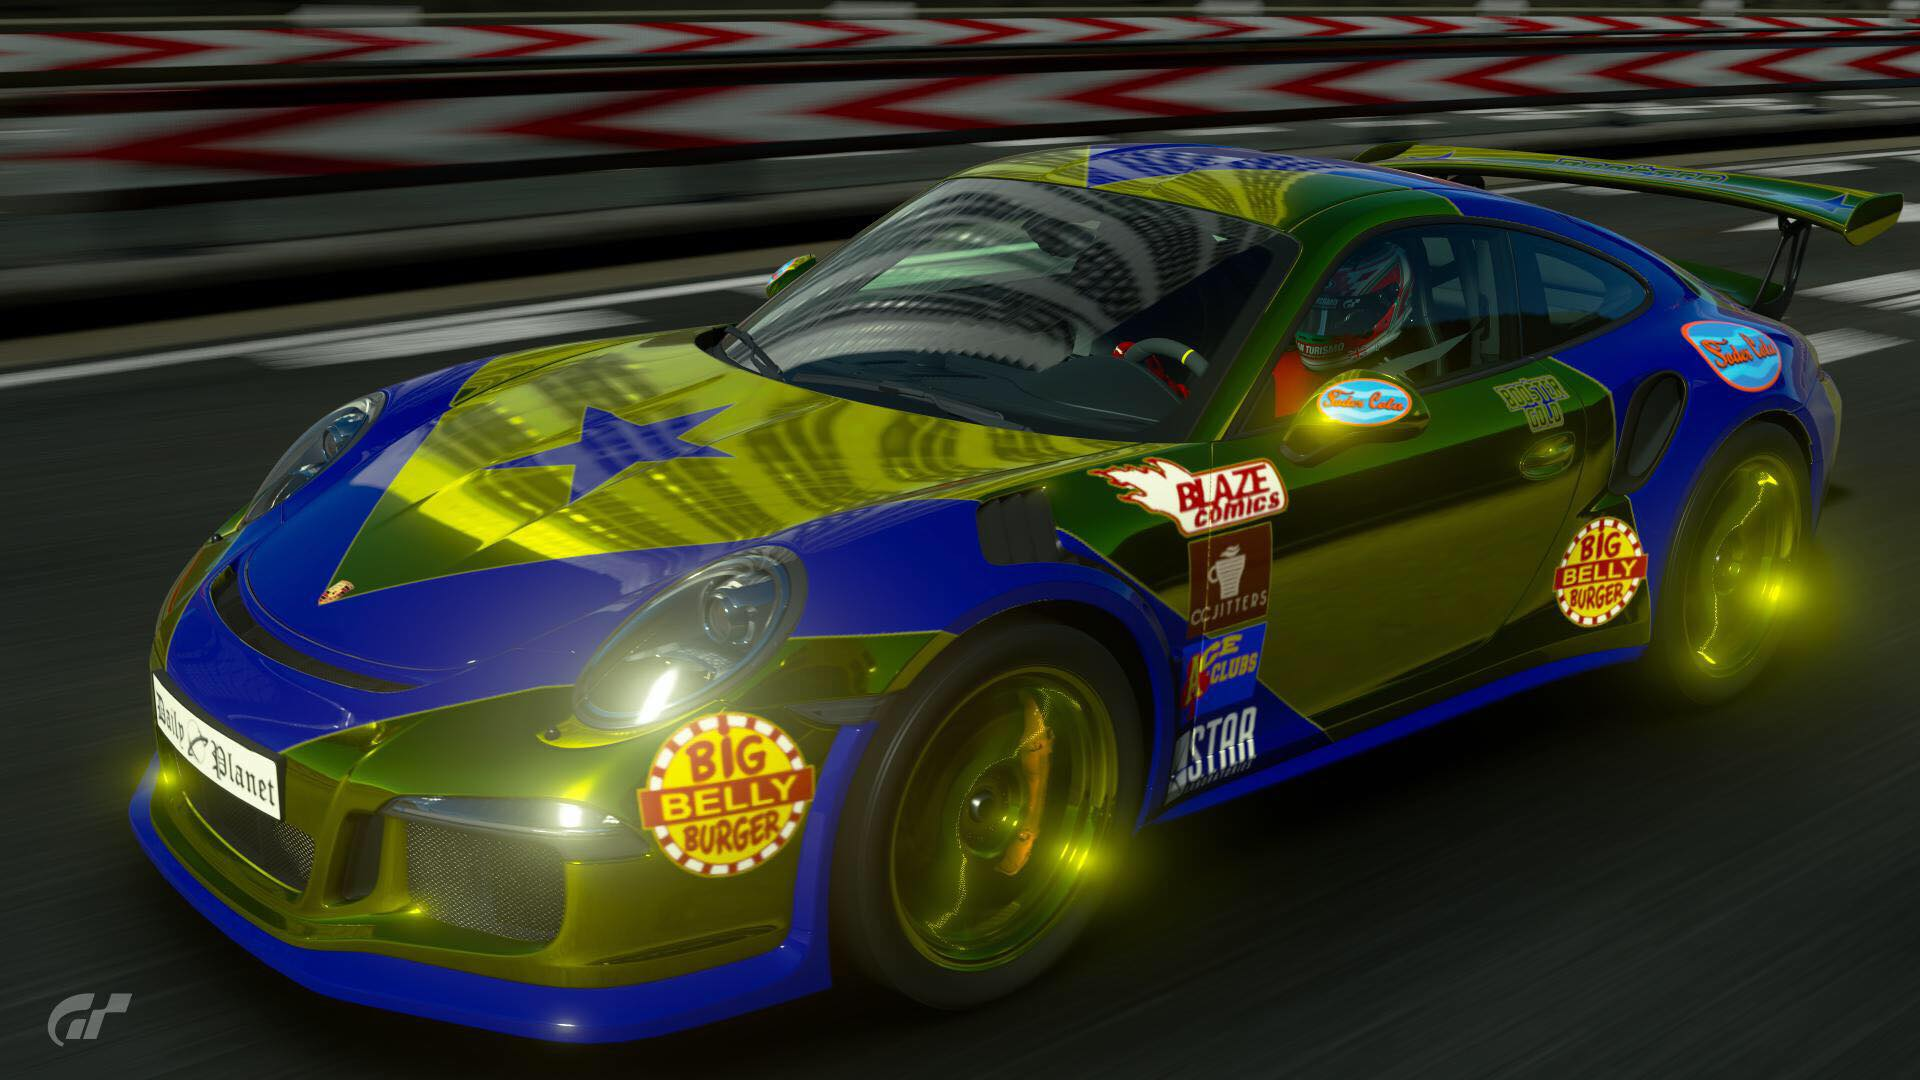 Gran Turismo Photo: DC Comics Booster Gold Porsche by Paxo666